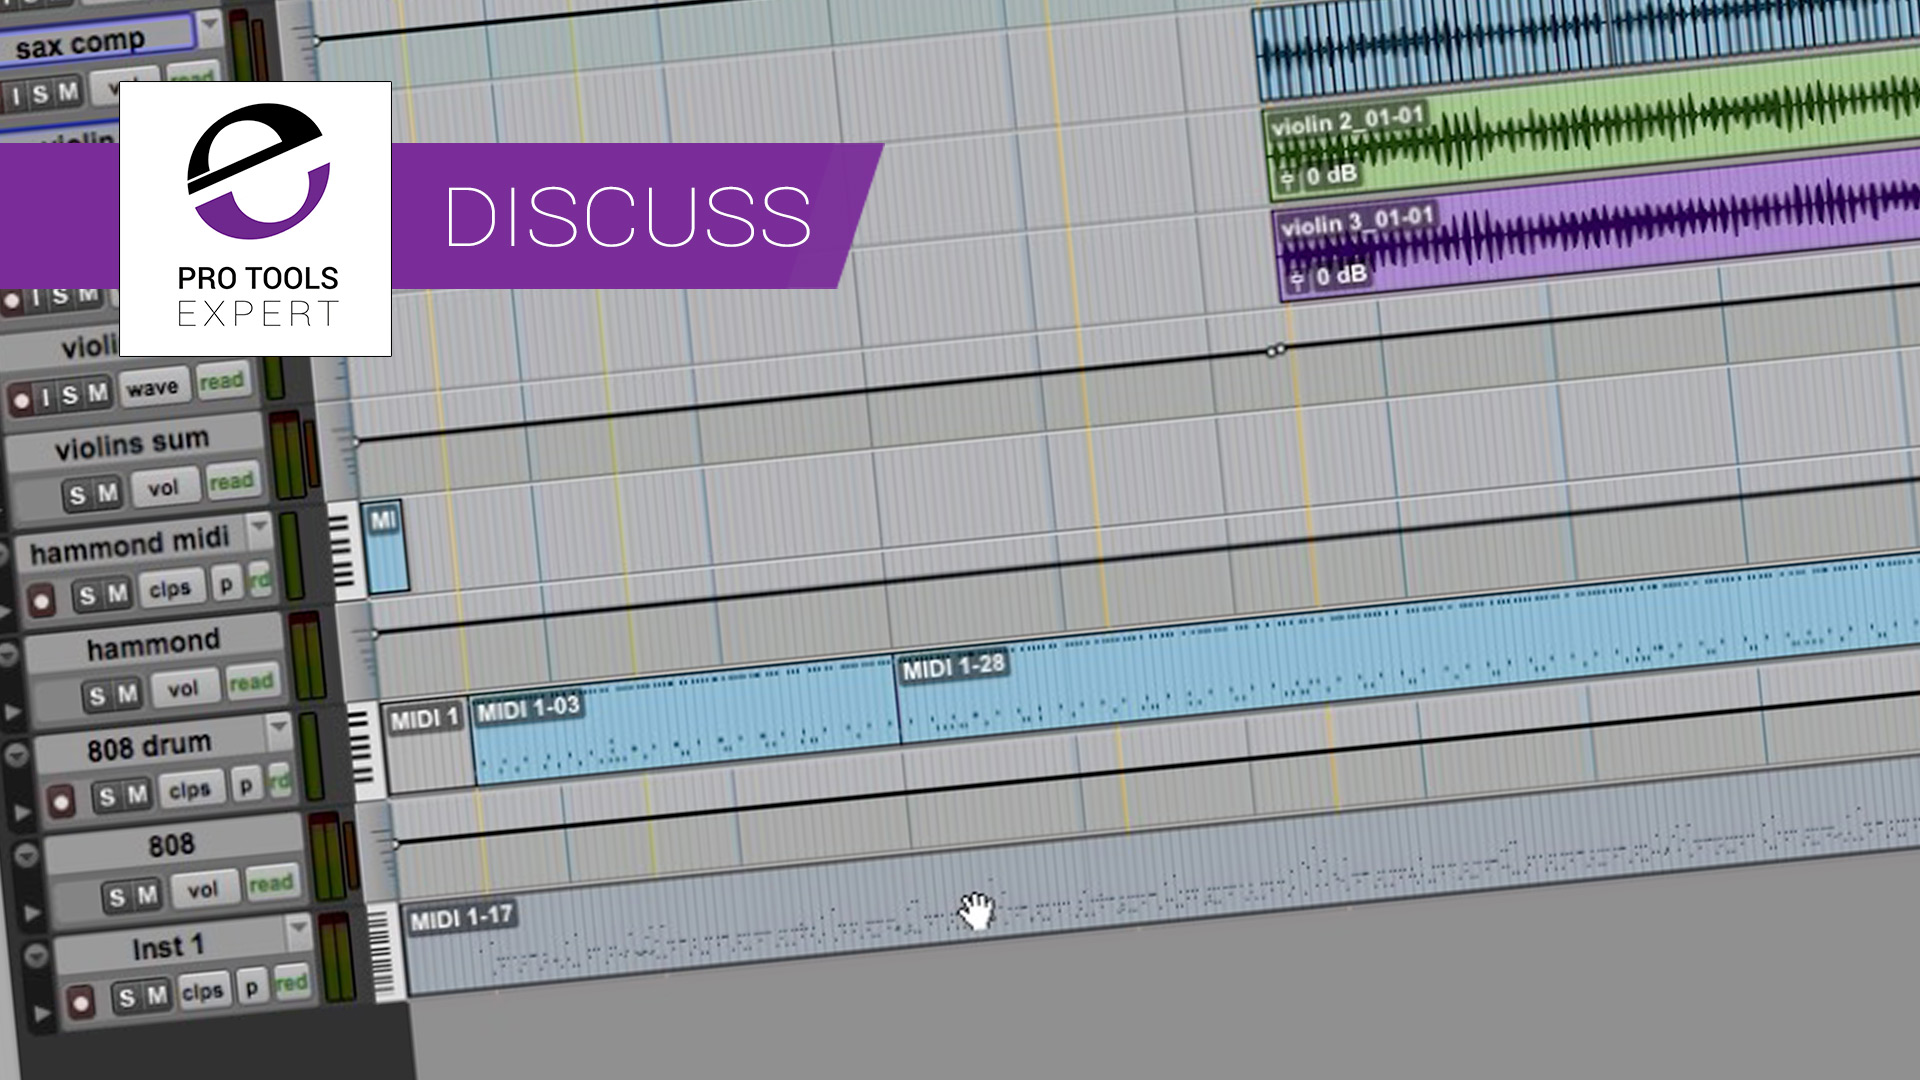 Name-One-Pro-Tools-Bug-You-Still-Experience-Frequently-In-Your-Pro-Tools-Studio.jpg